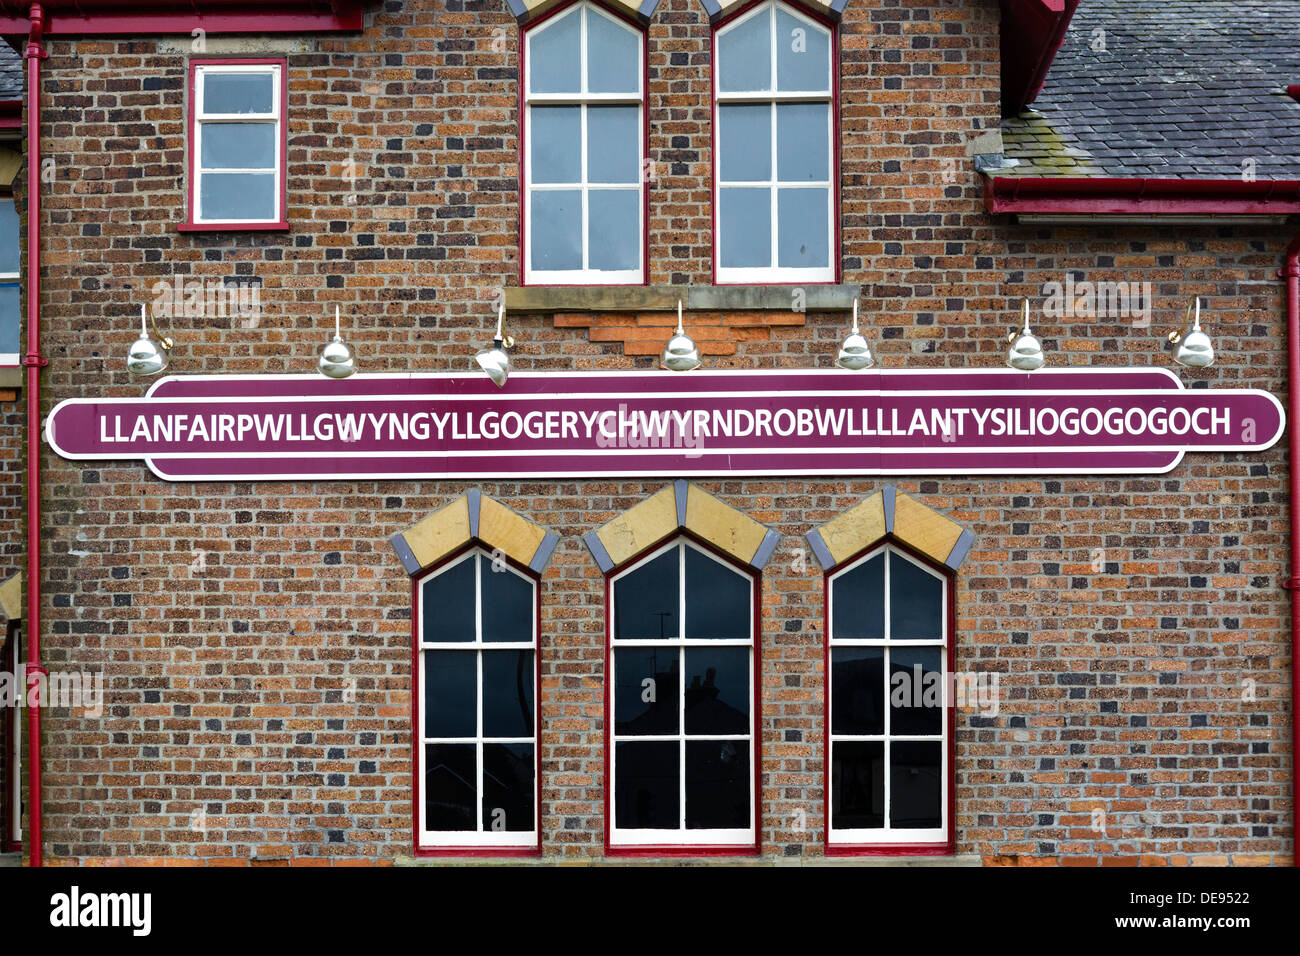 Station sign for longest place name in the UK, Llanfairpwllgwyngyllgogerychwyrndrobwllllantysiliogogogoch, Anglesey, Wales, UK - Stock Image